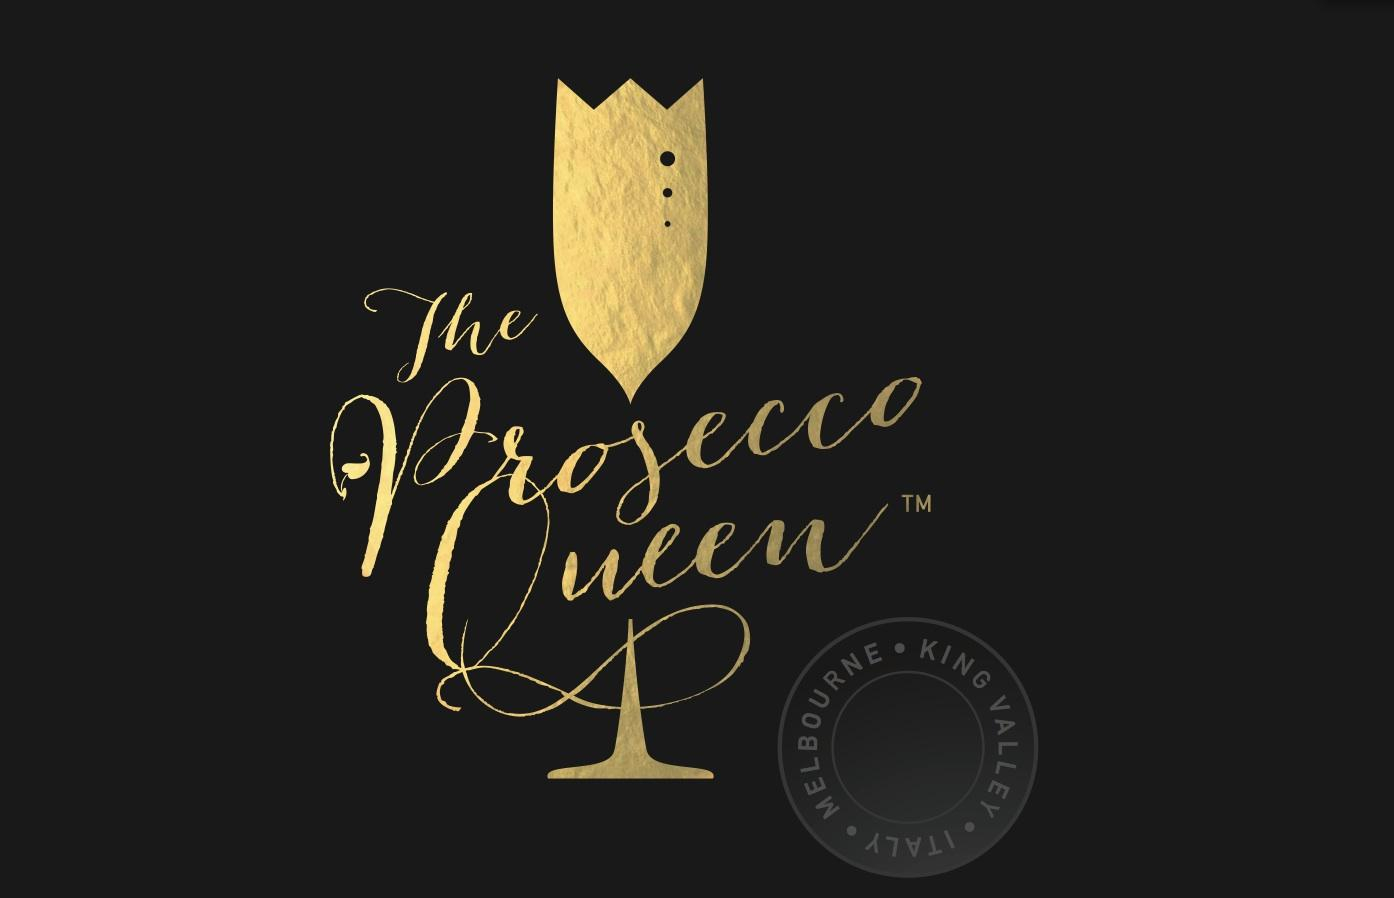 The Prosecco Queen